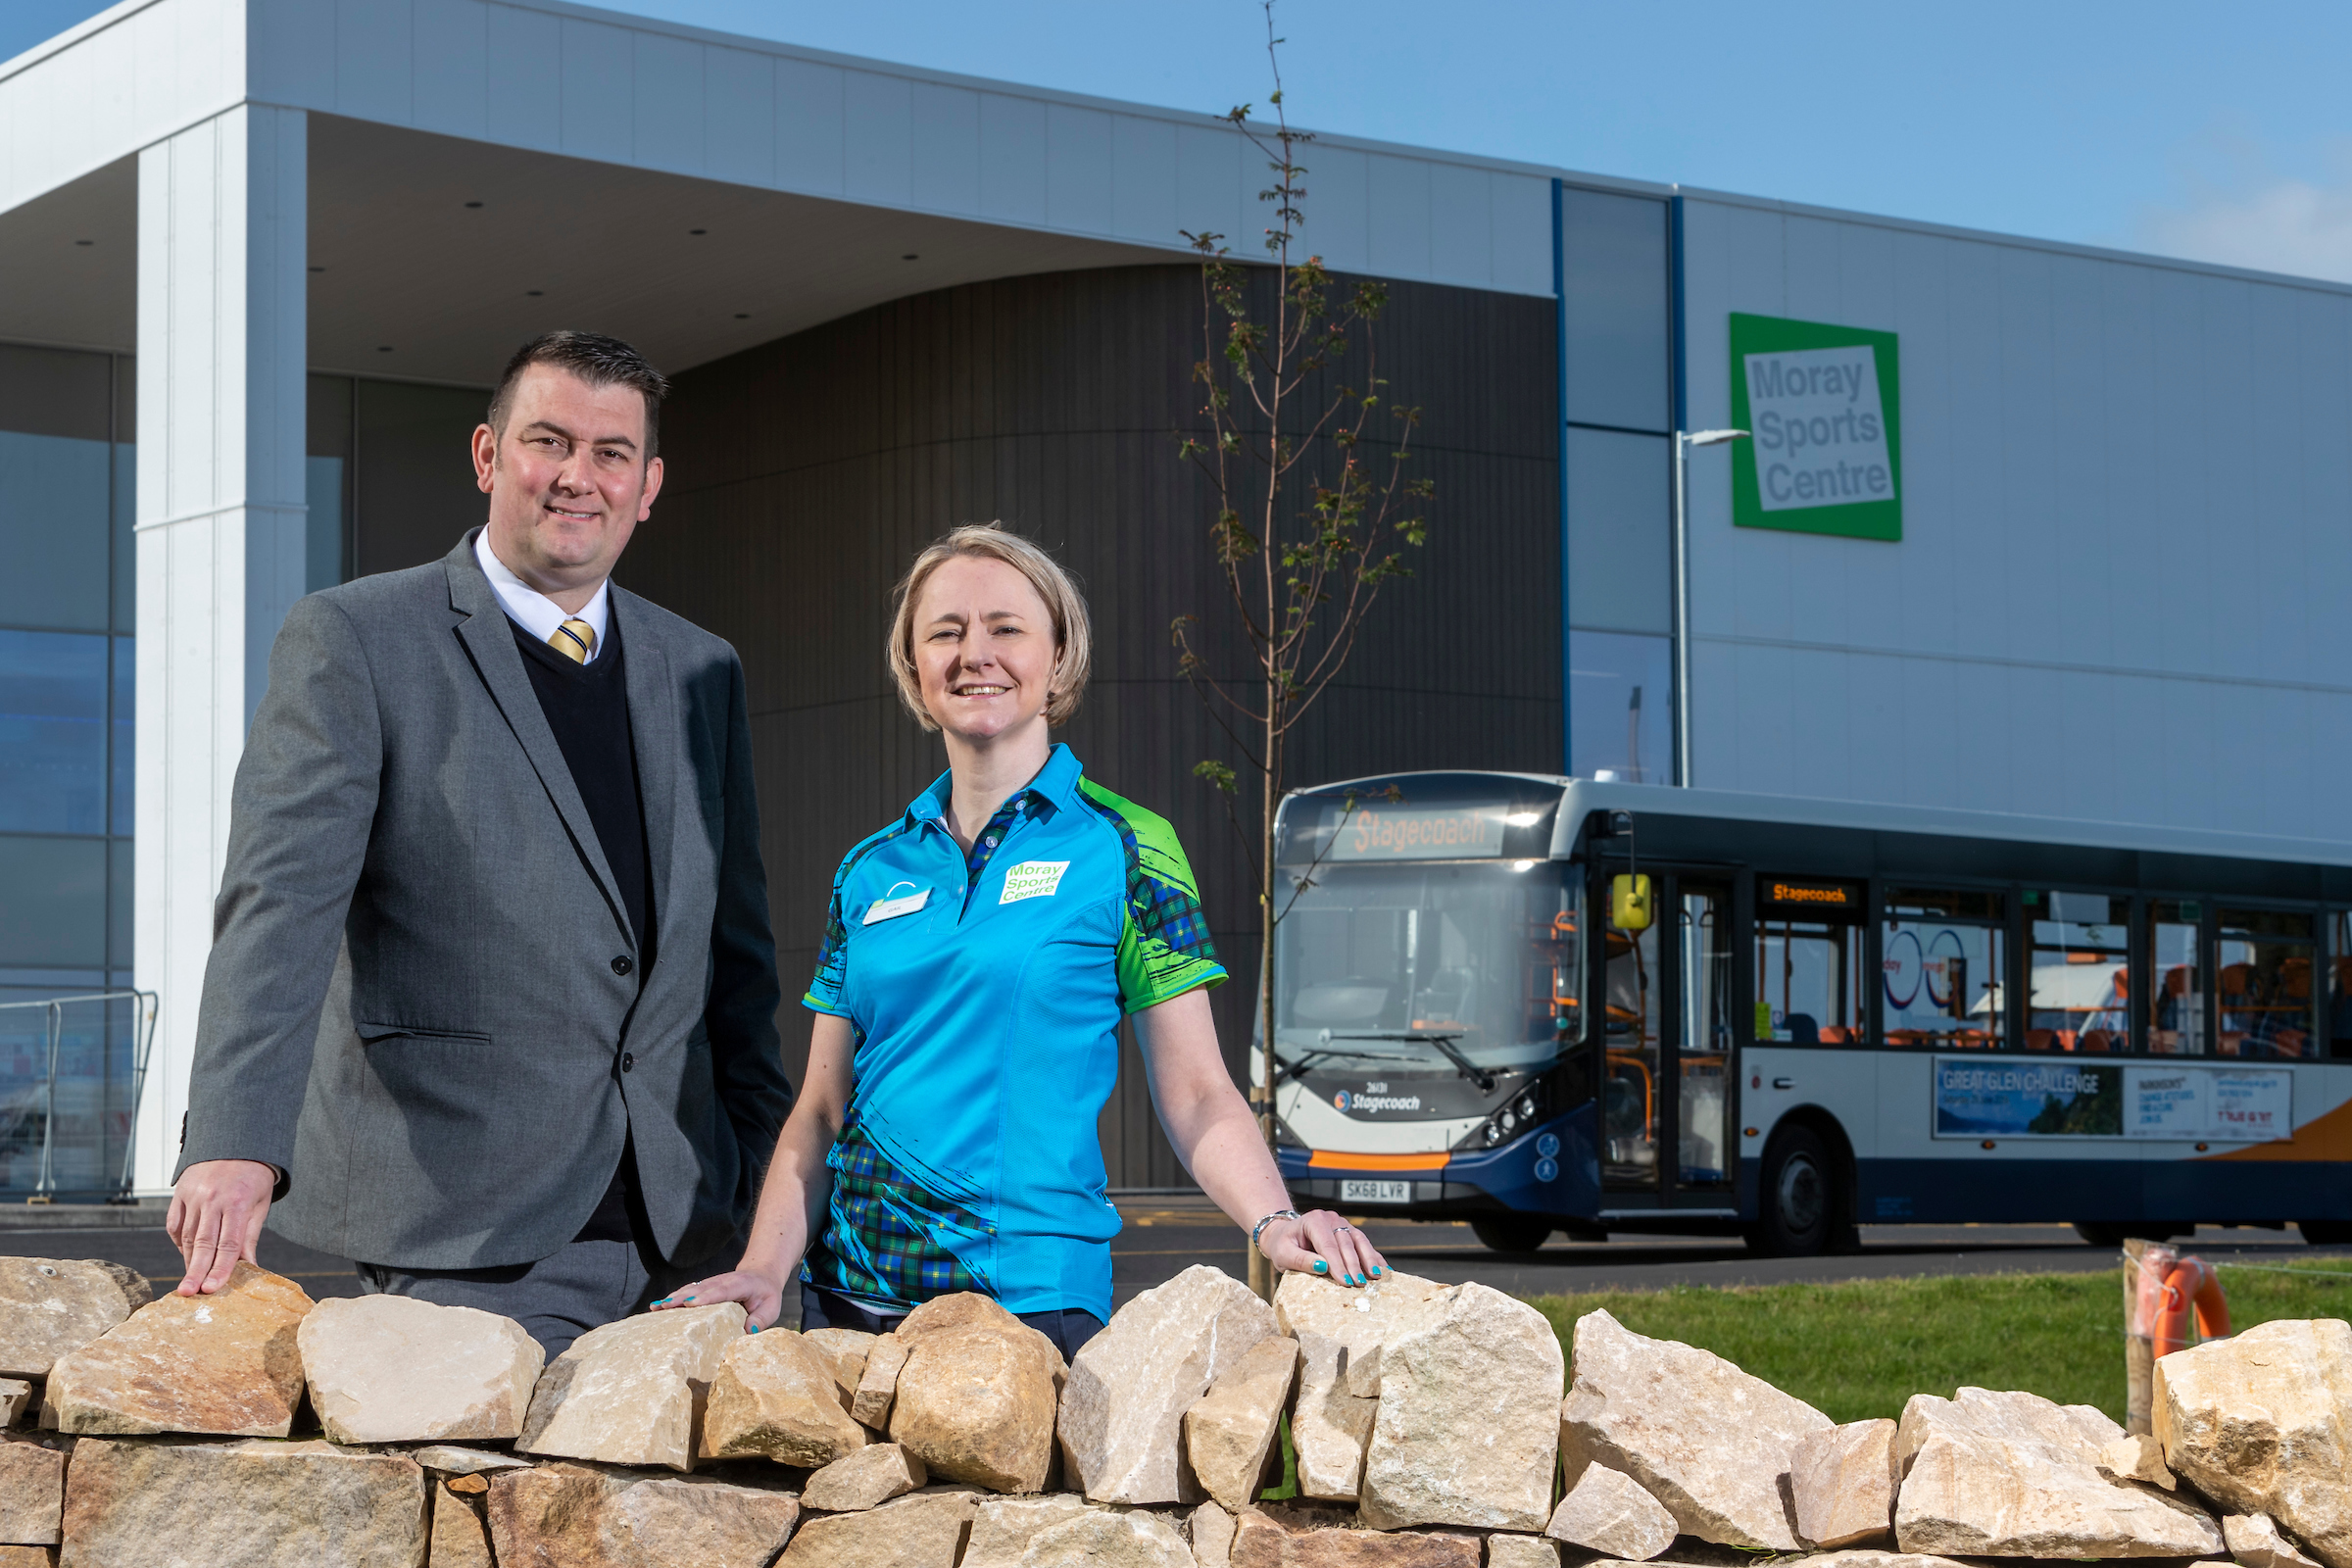 Elgin Bus boasts Route Extension to New Sports Centre